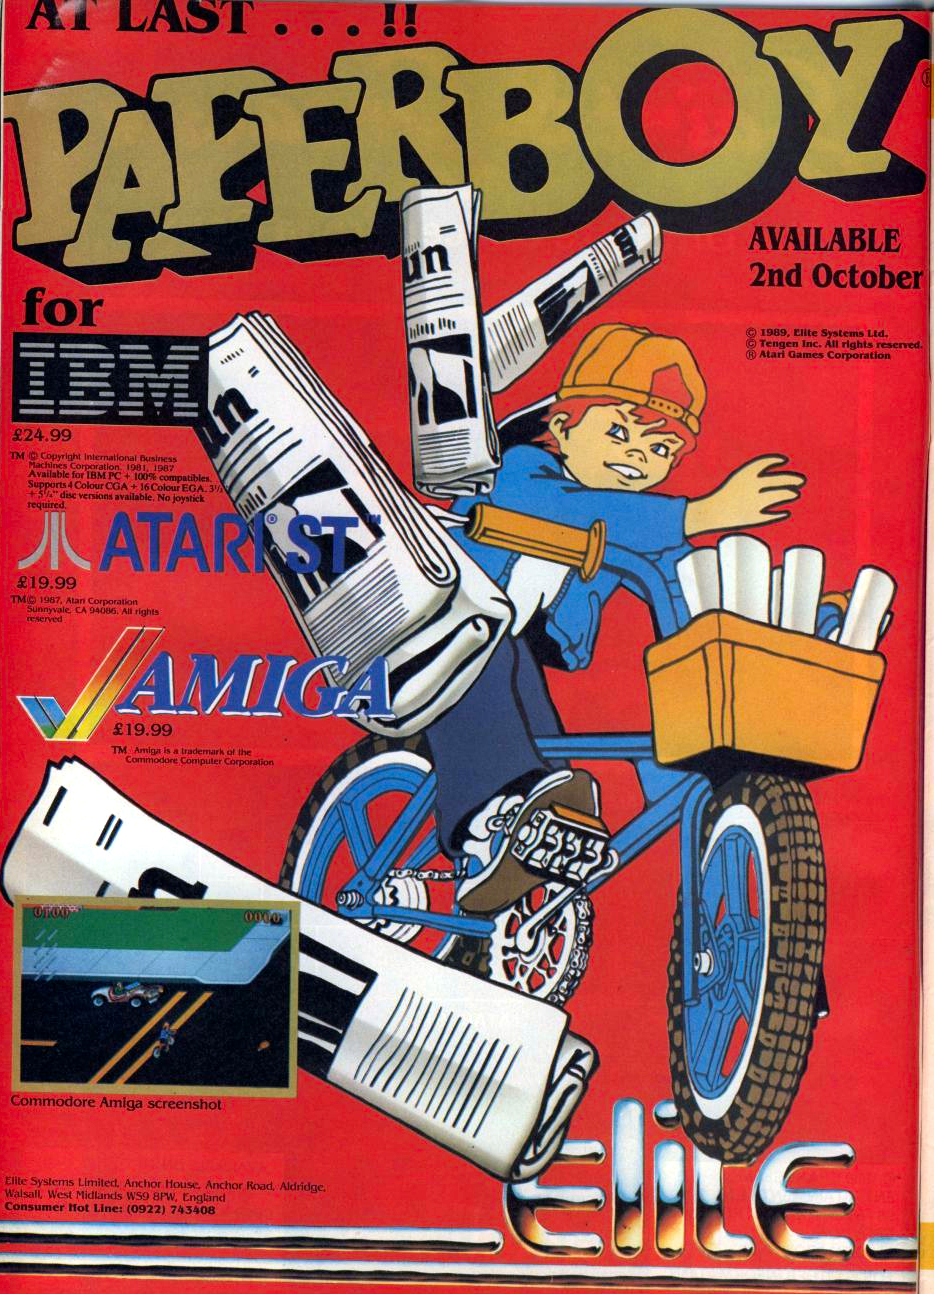 The object of Paperboy is to deliver papers to your customers while inflicting as much damage as possible to the houses of your non-customers. To make things more difficult, numerous obstacles get in your way including construction workers, rogue tires, skateboarders, dogs and cats, cars, and even the occasional tornado.